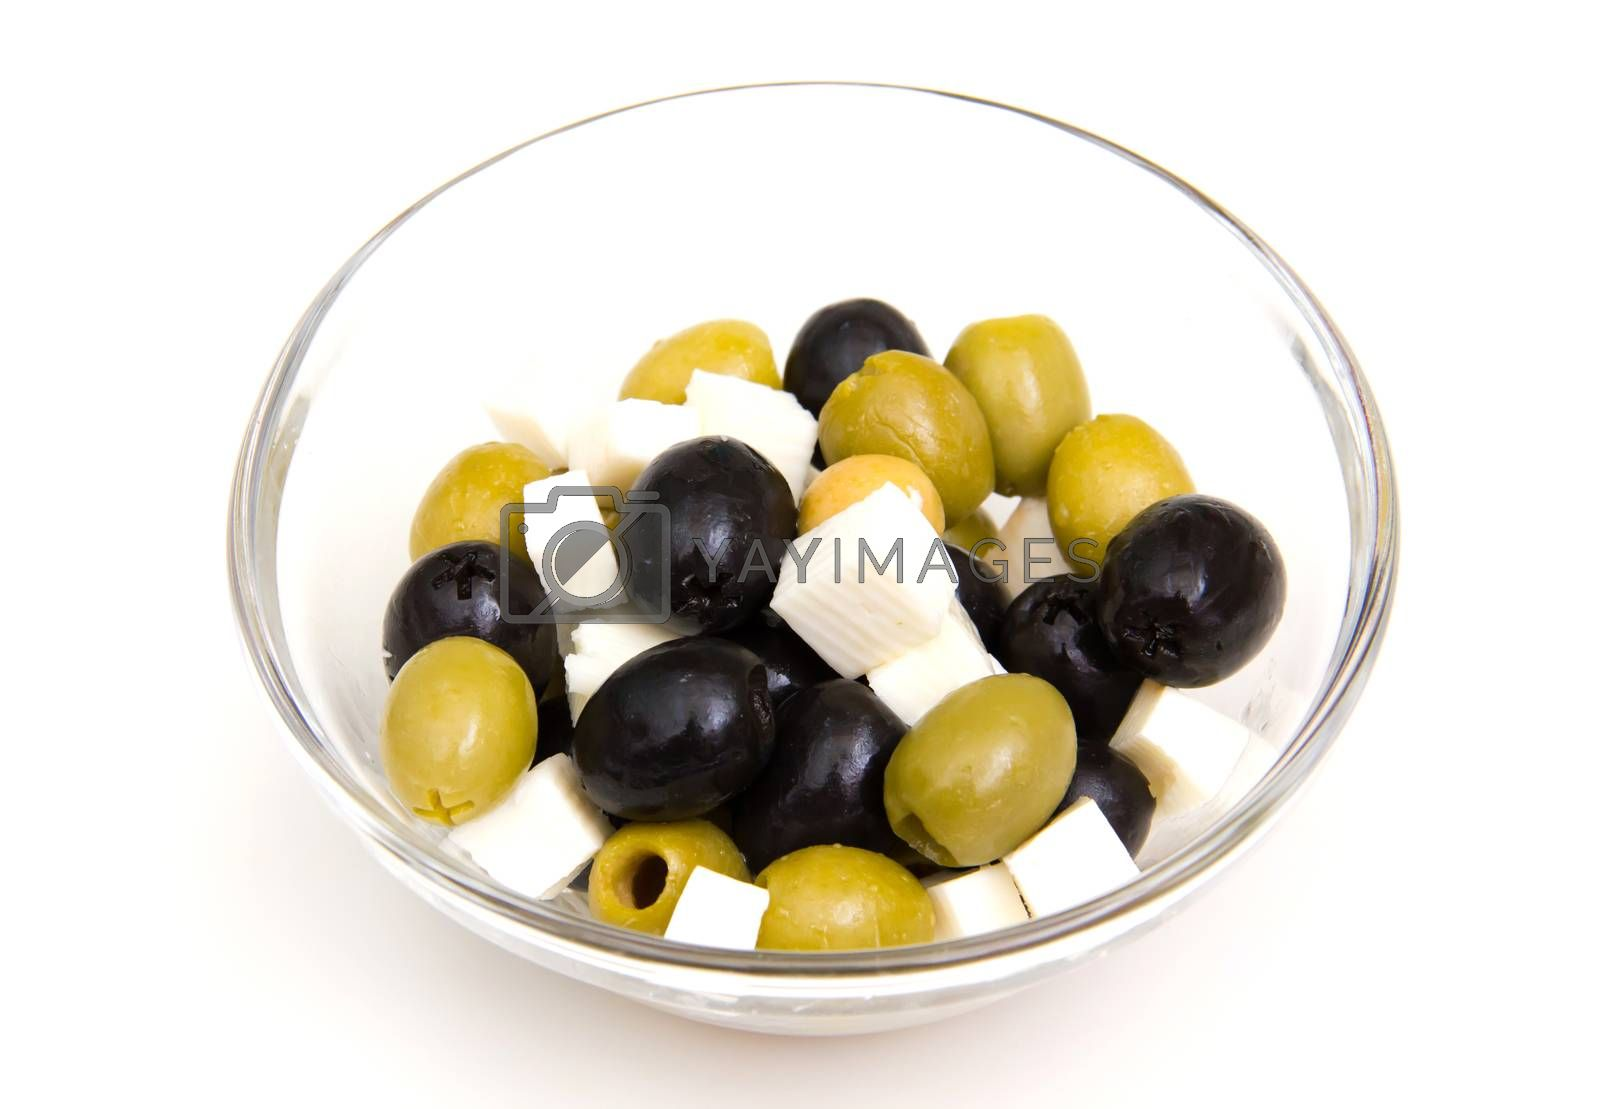 Olives with cheese on bowl on white background